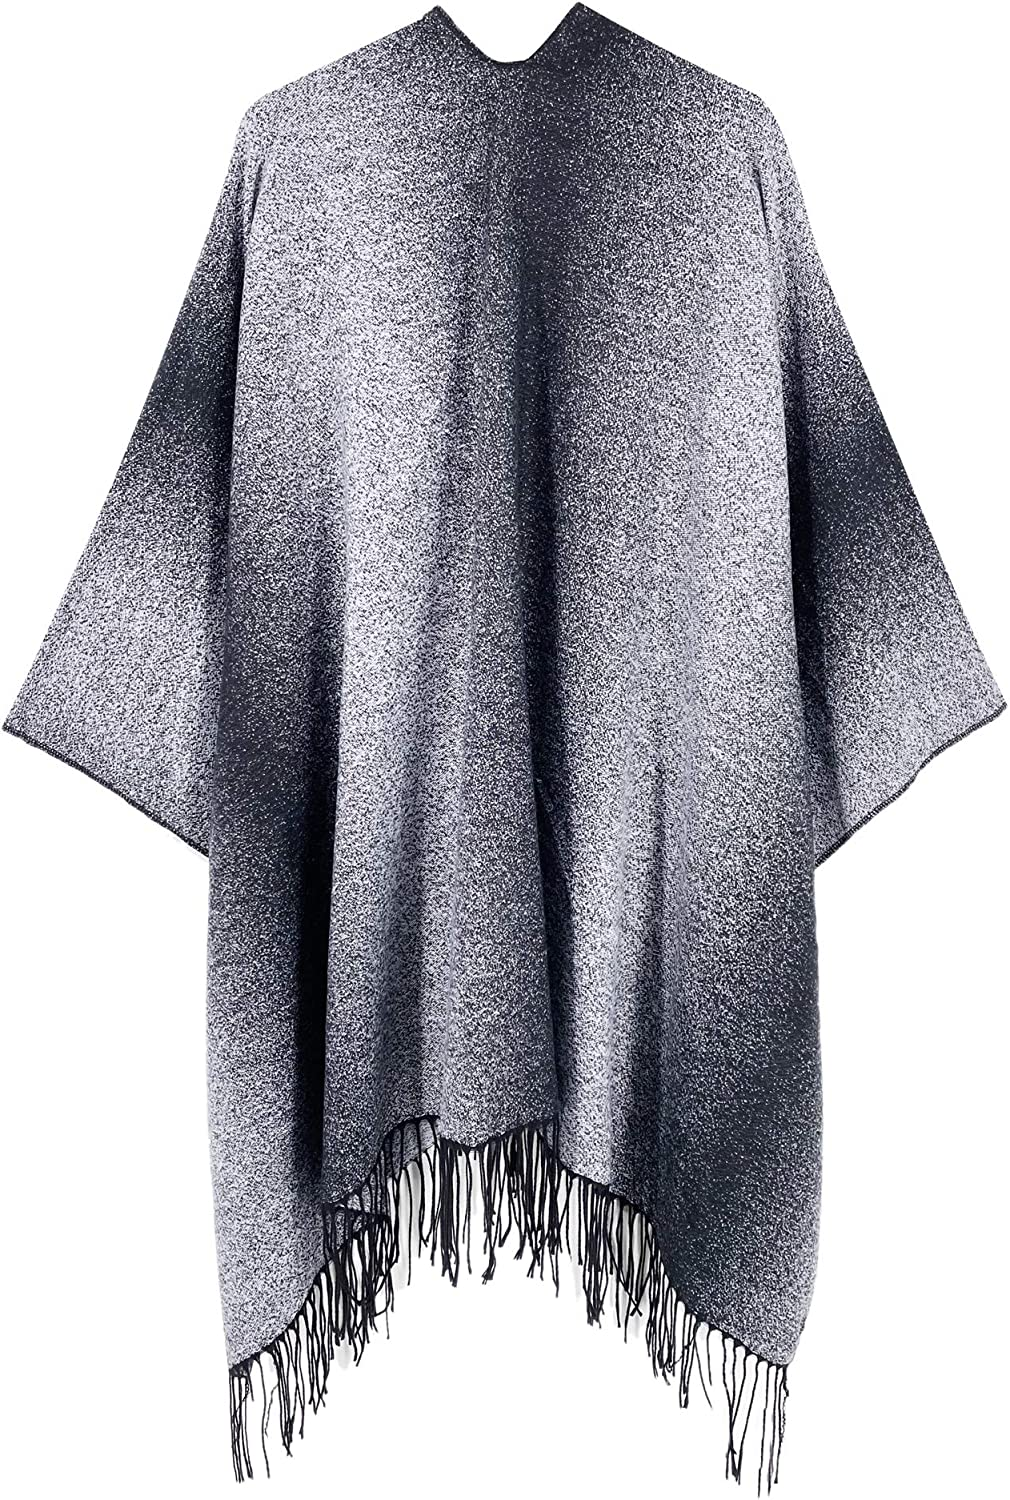 Spicy Sandia Ponchos for Women Thicken Faux Fur Oversize Cape Poncho Open-Front Blanket Wrap